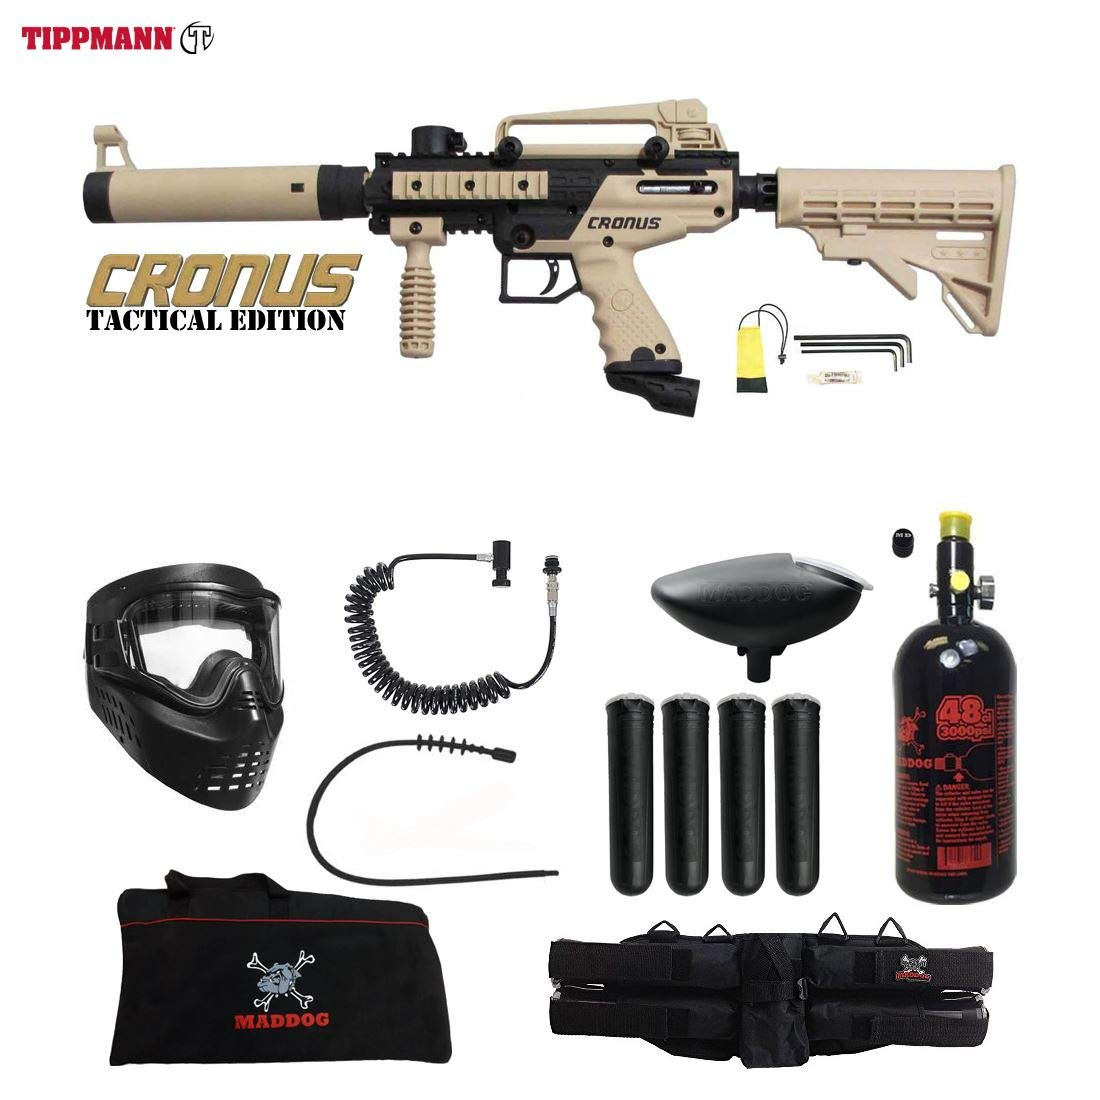 Maddog Tippmann Cronus Tactical Specialist HPA Paintball Gun Package - Black/Tan by Maddog